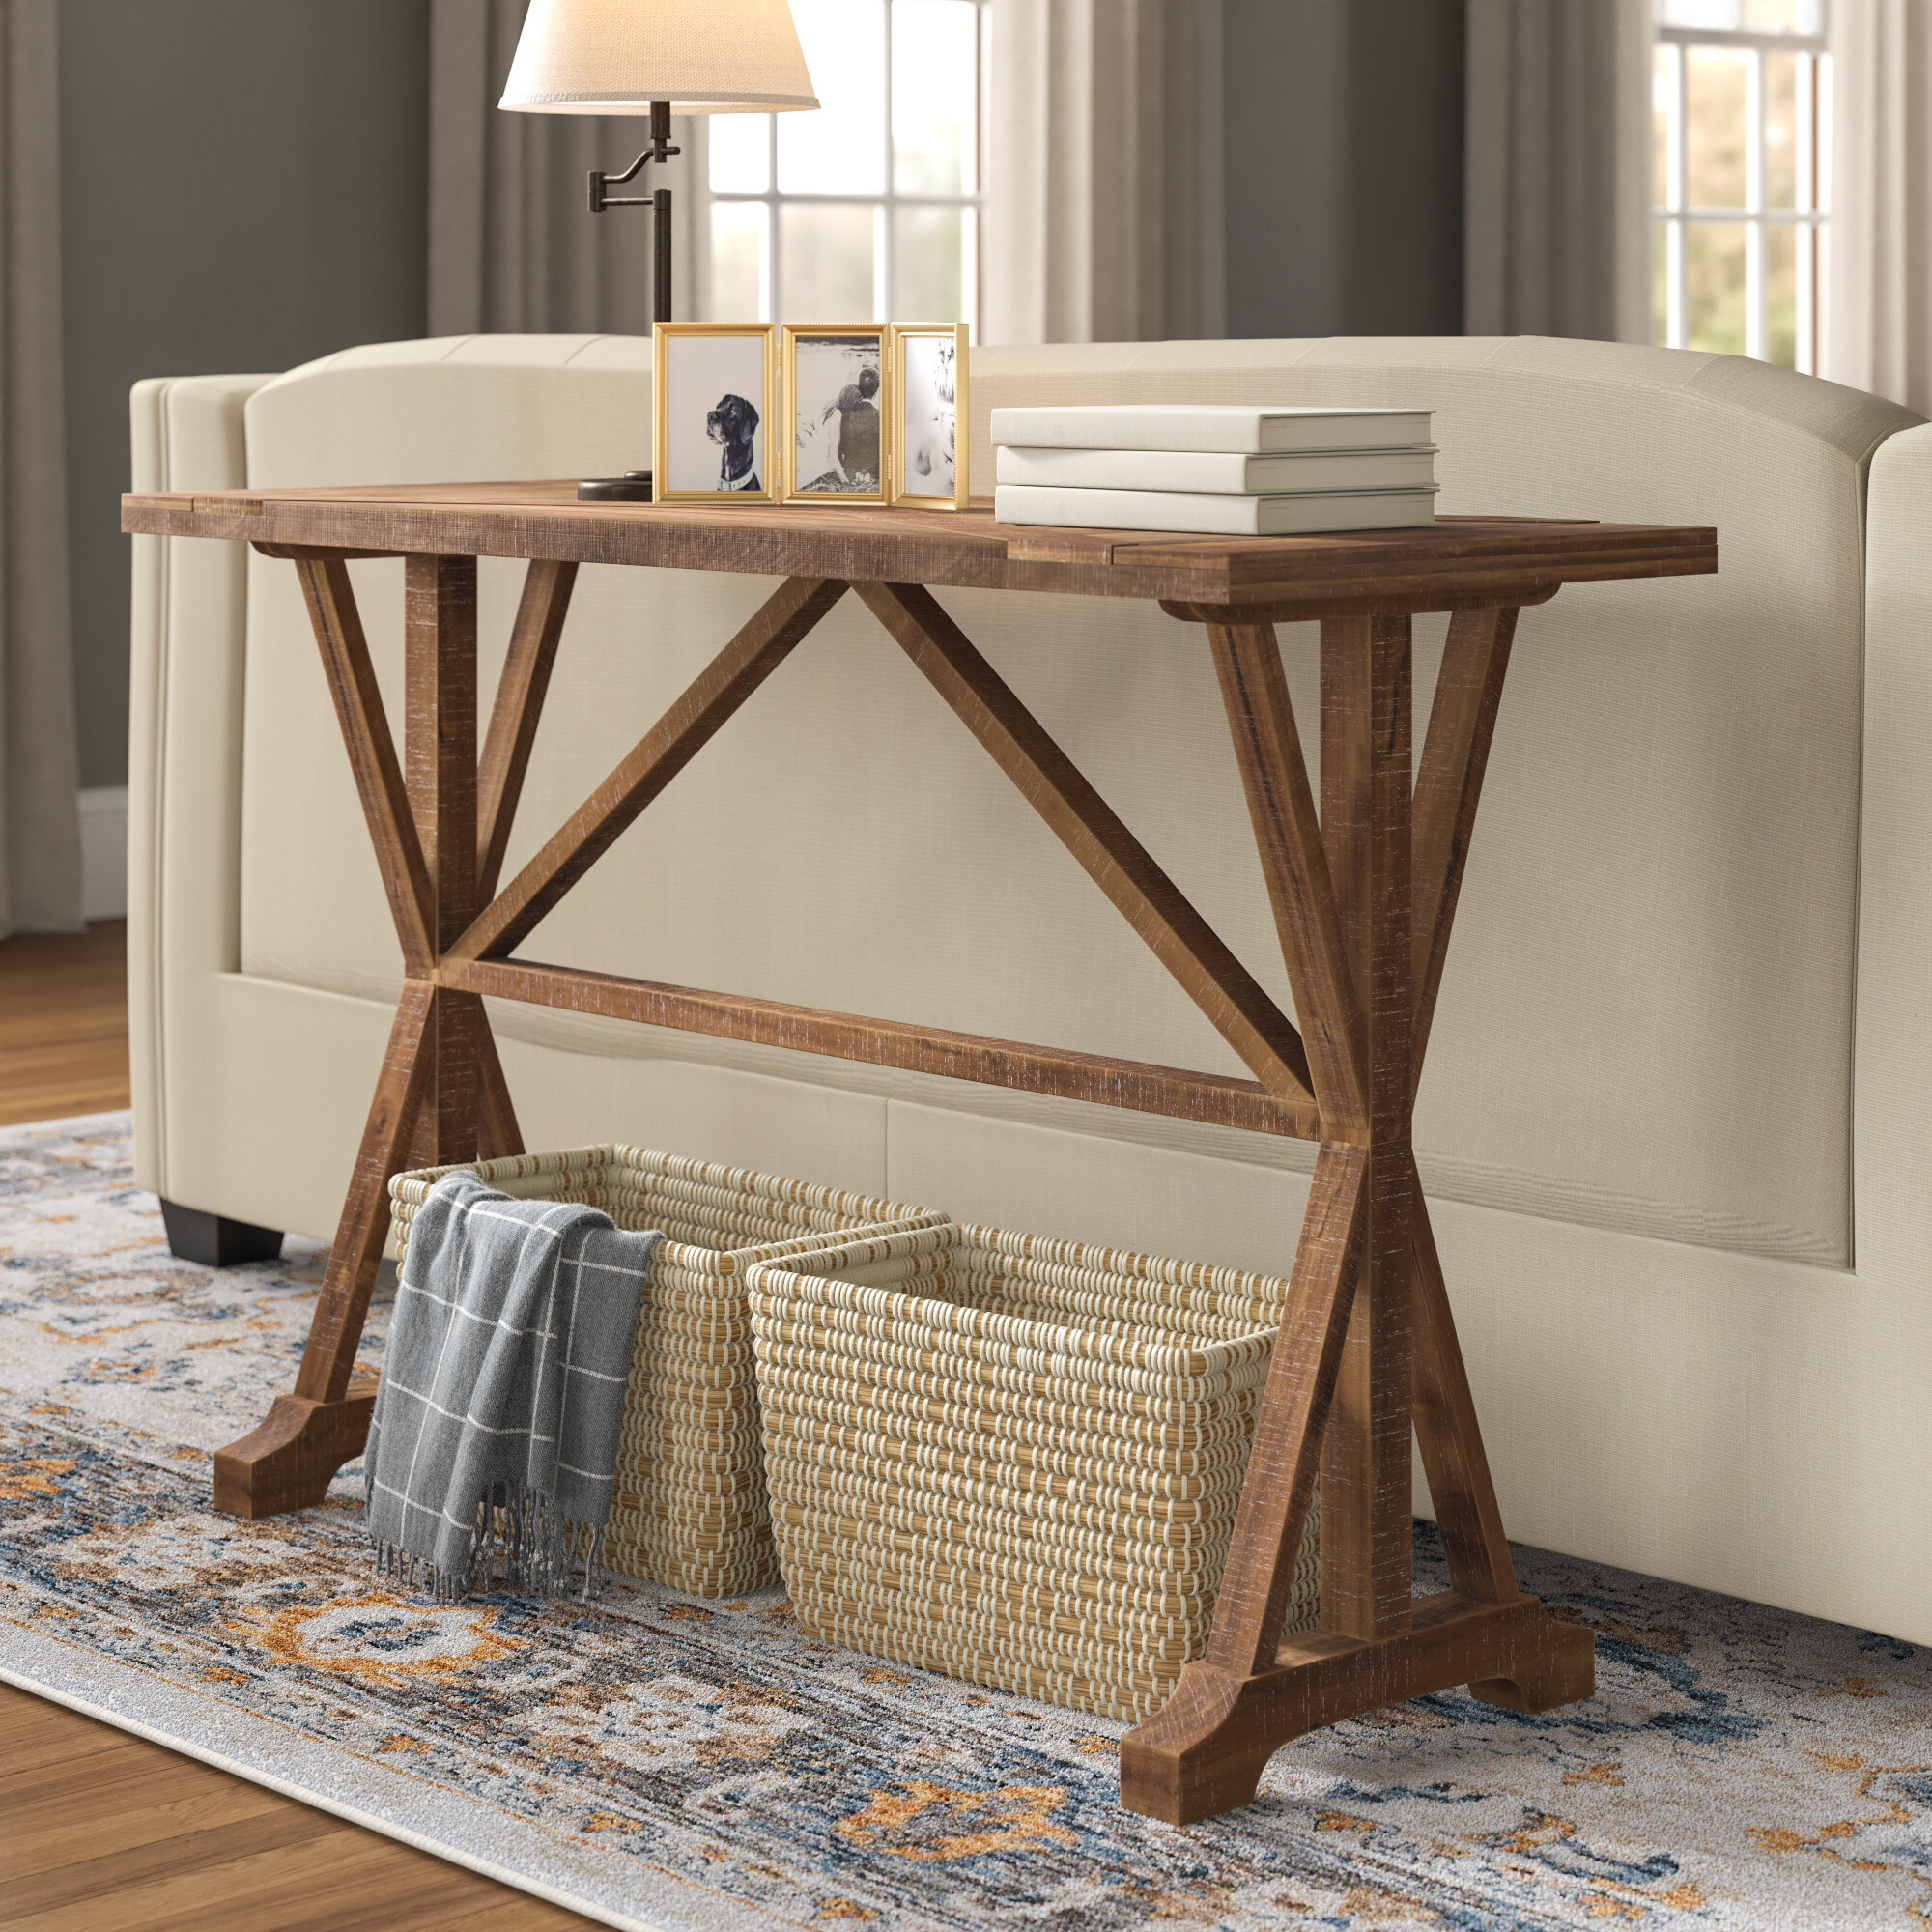 Swell Oak Bluffs Wooden Console Table Gmtry Best Dining Table And Chair Ideas Images Gmtryco